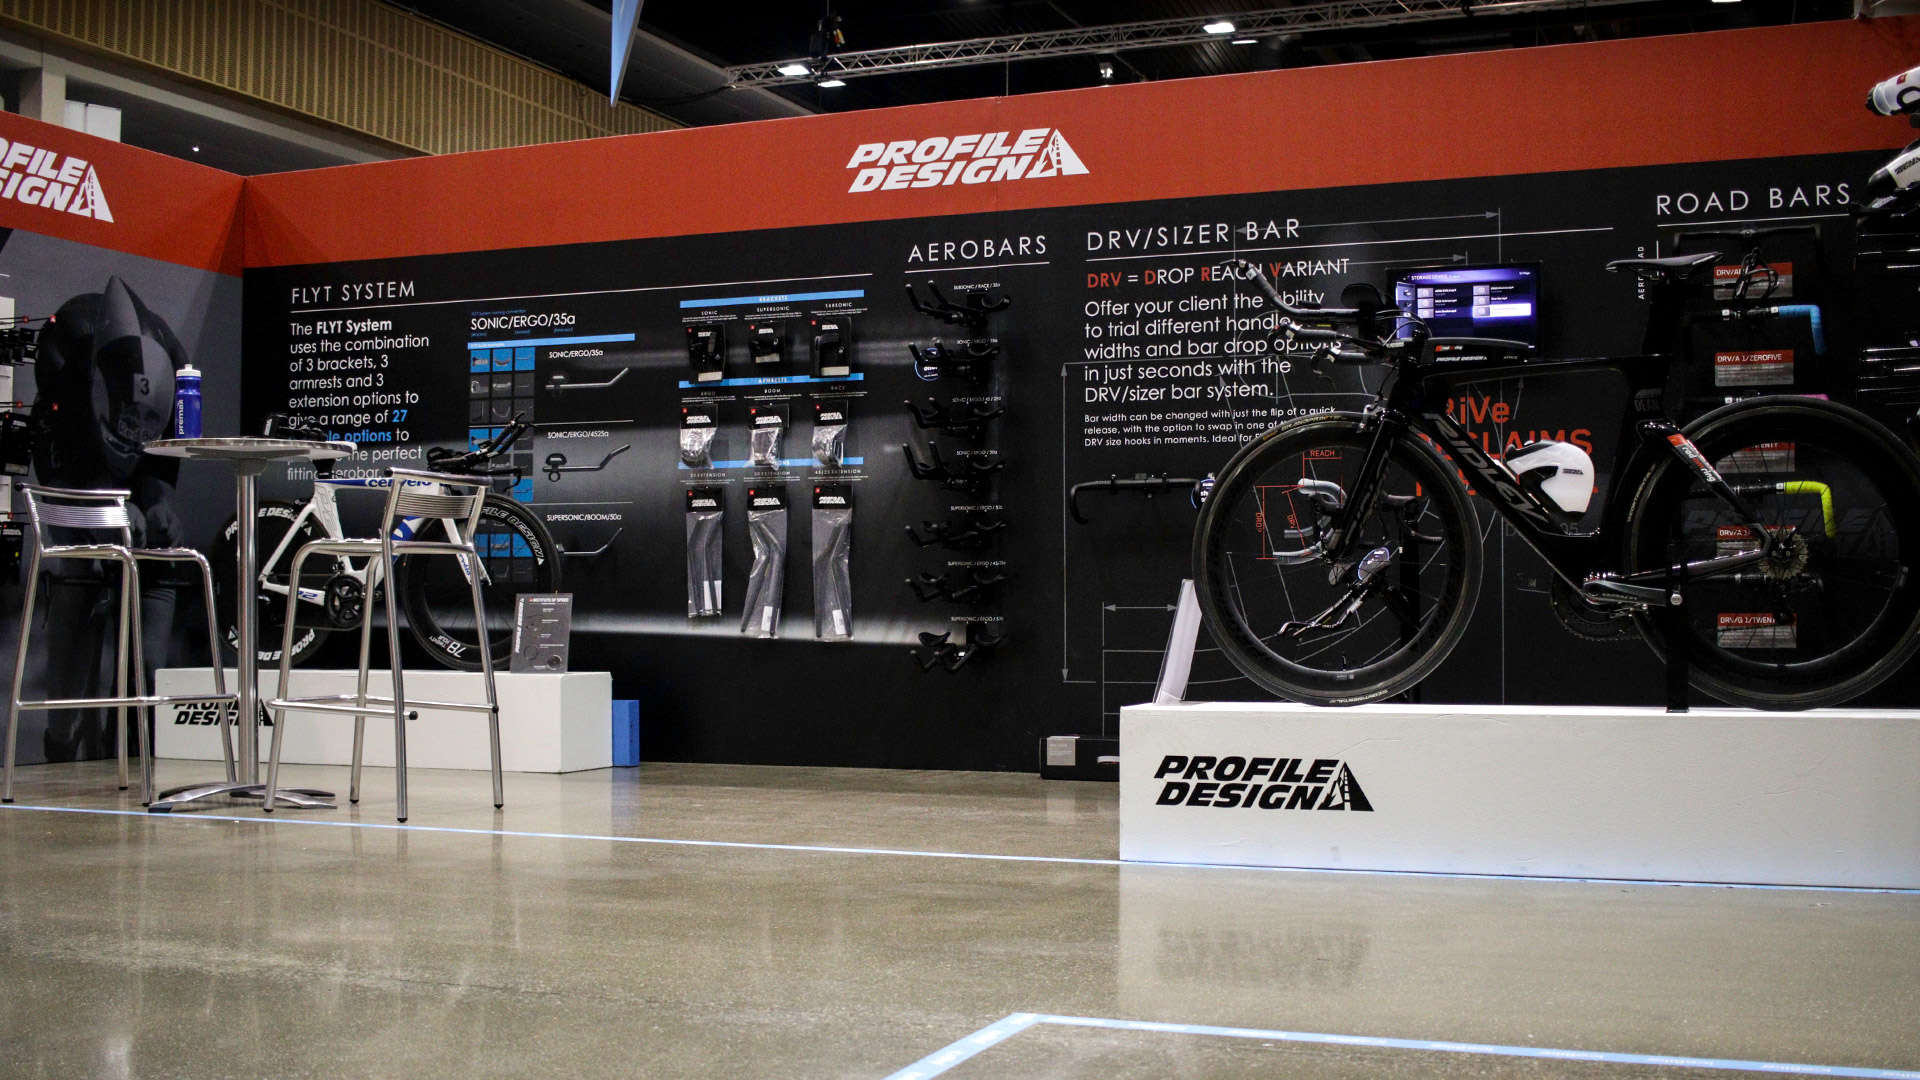 IceBike UK - Profile design Stand